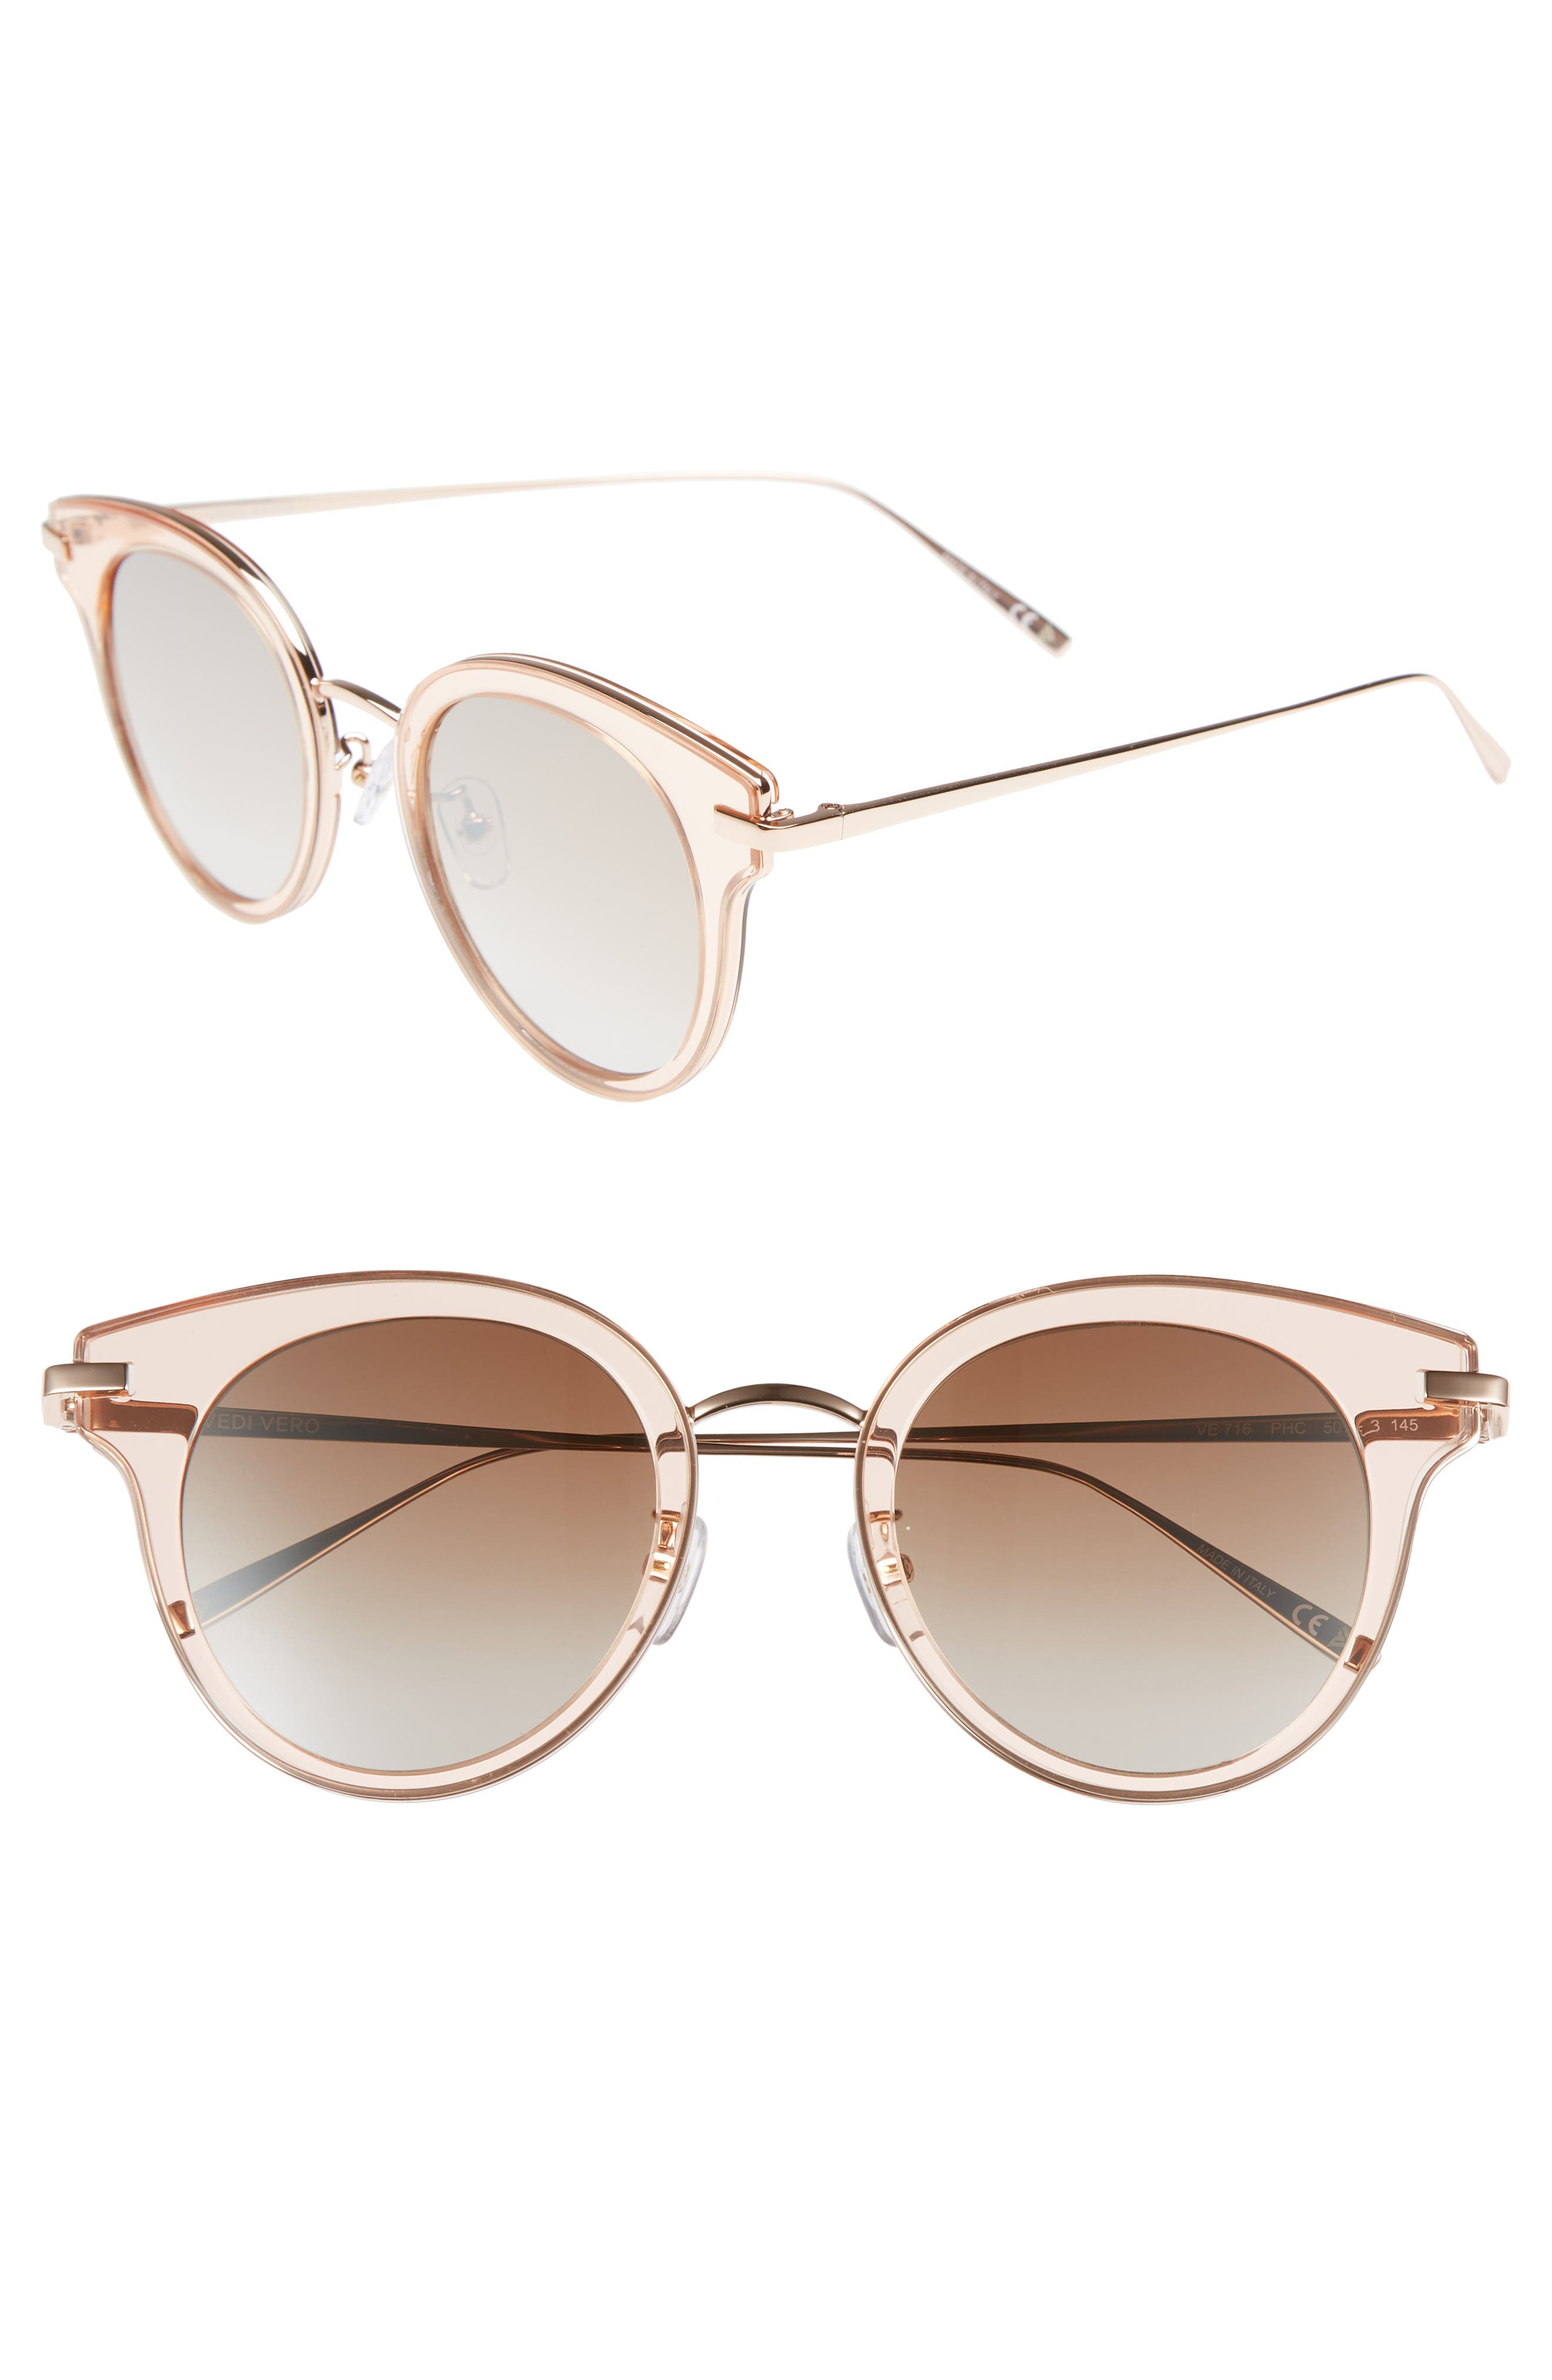 50mm Round Sunglasses,                             Main thumbnail 1, color,                             Rose Gold/Brown Mirror